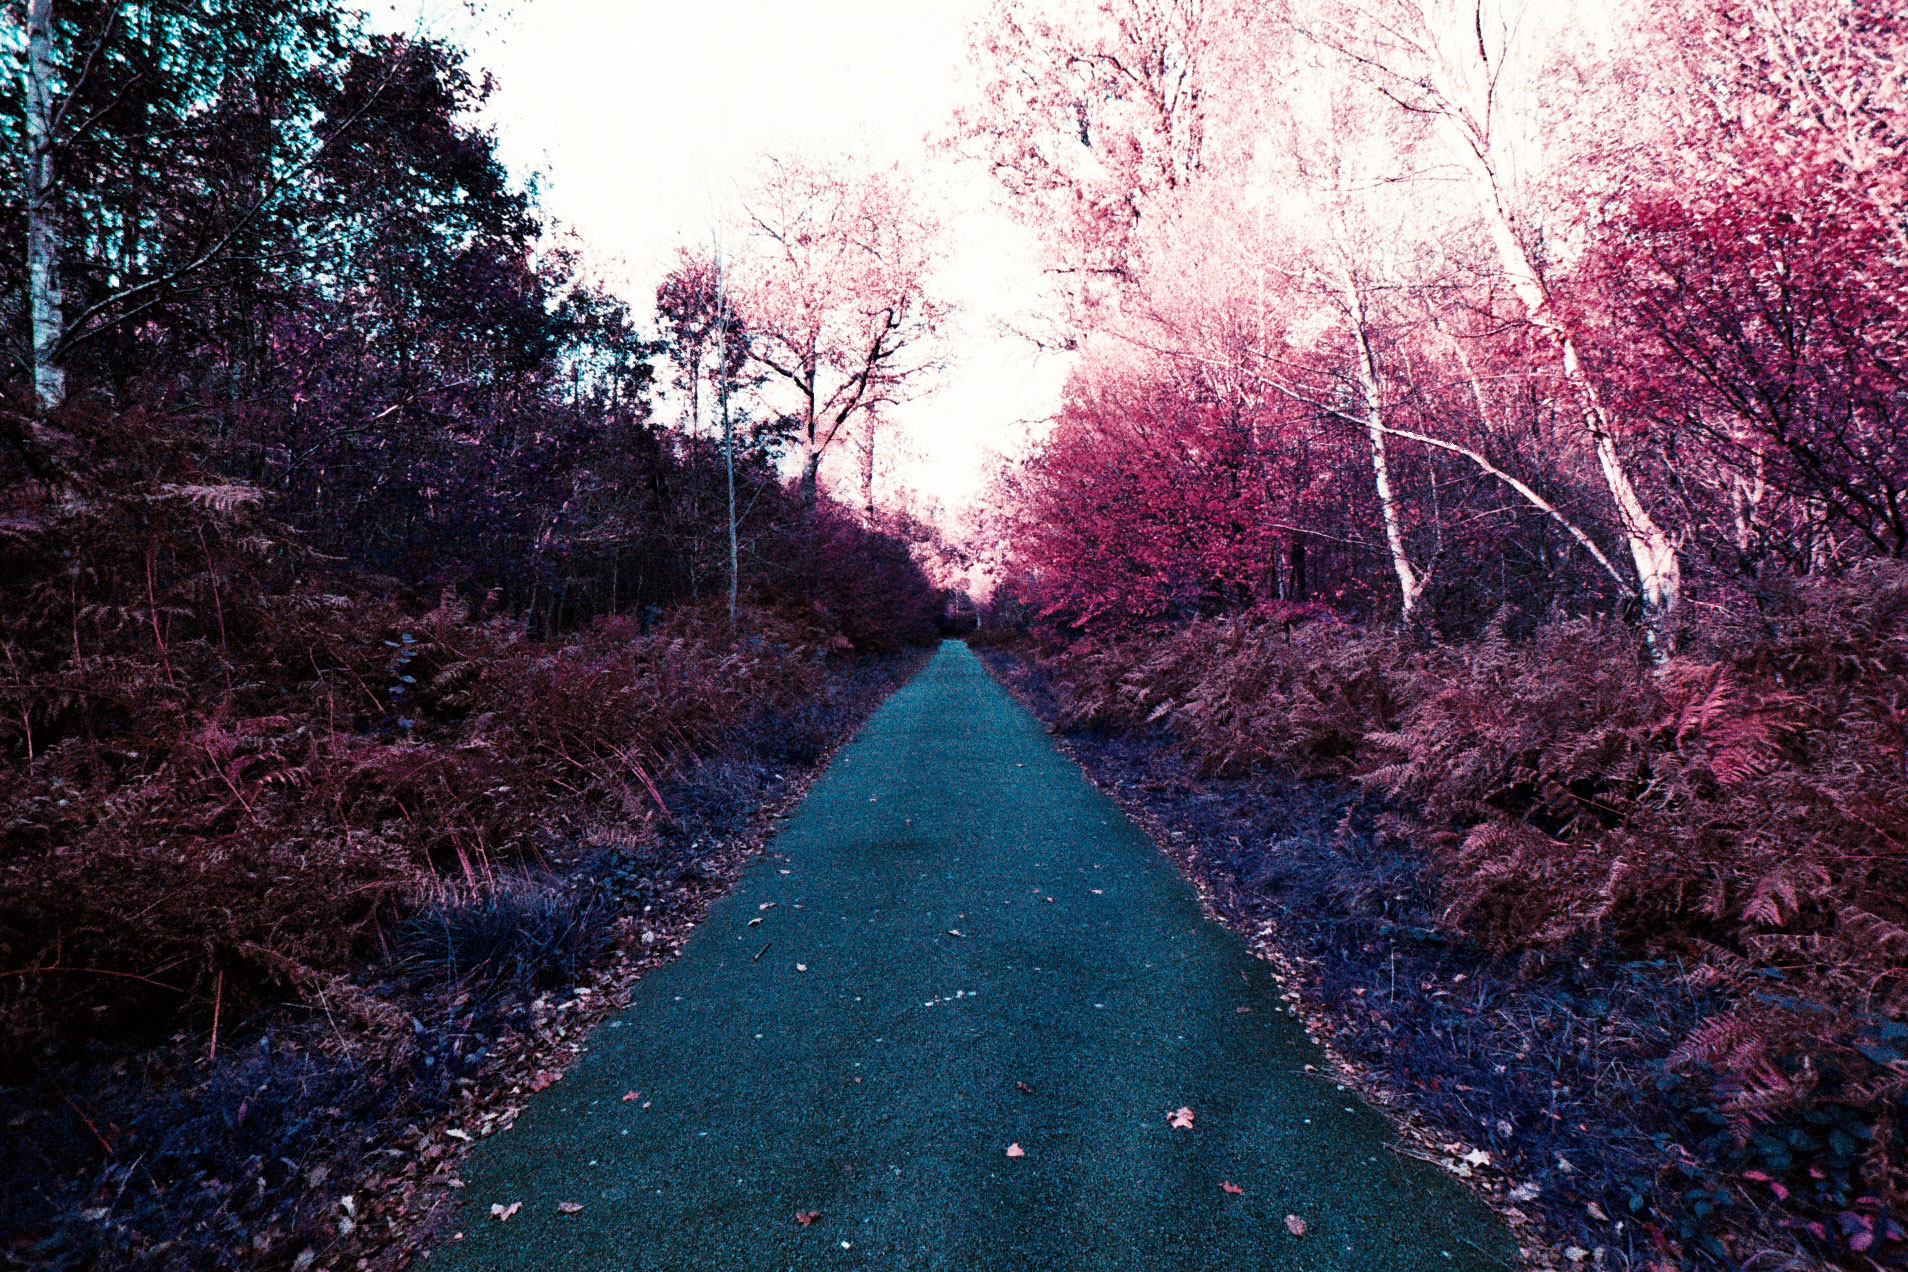 02_EOS1N_LOMOCHROME_PURPLE_200_copyright_ThomasApp.jpg